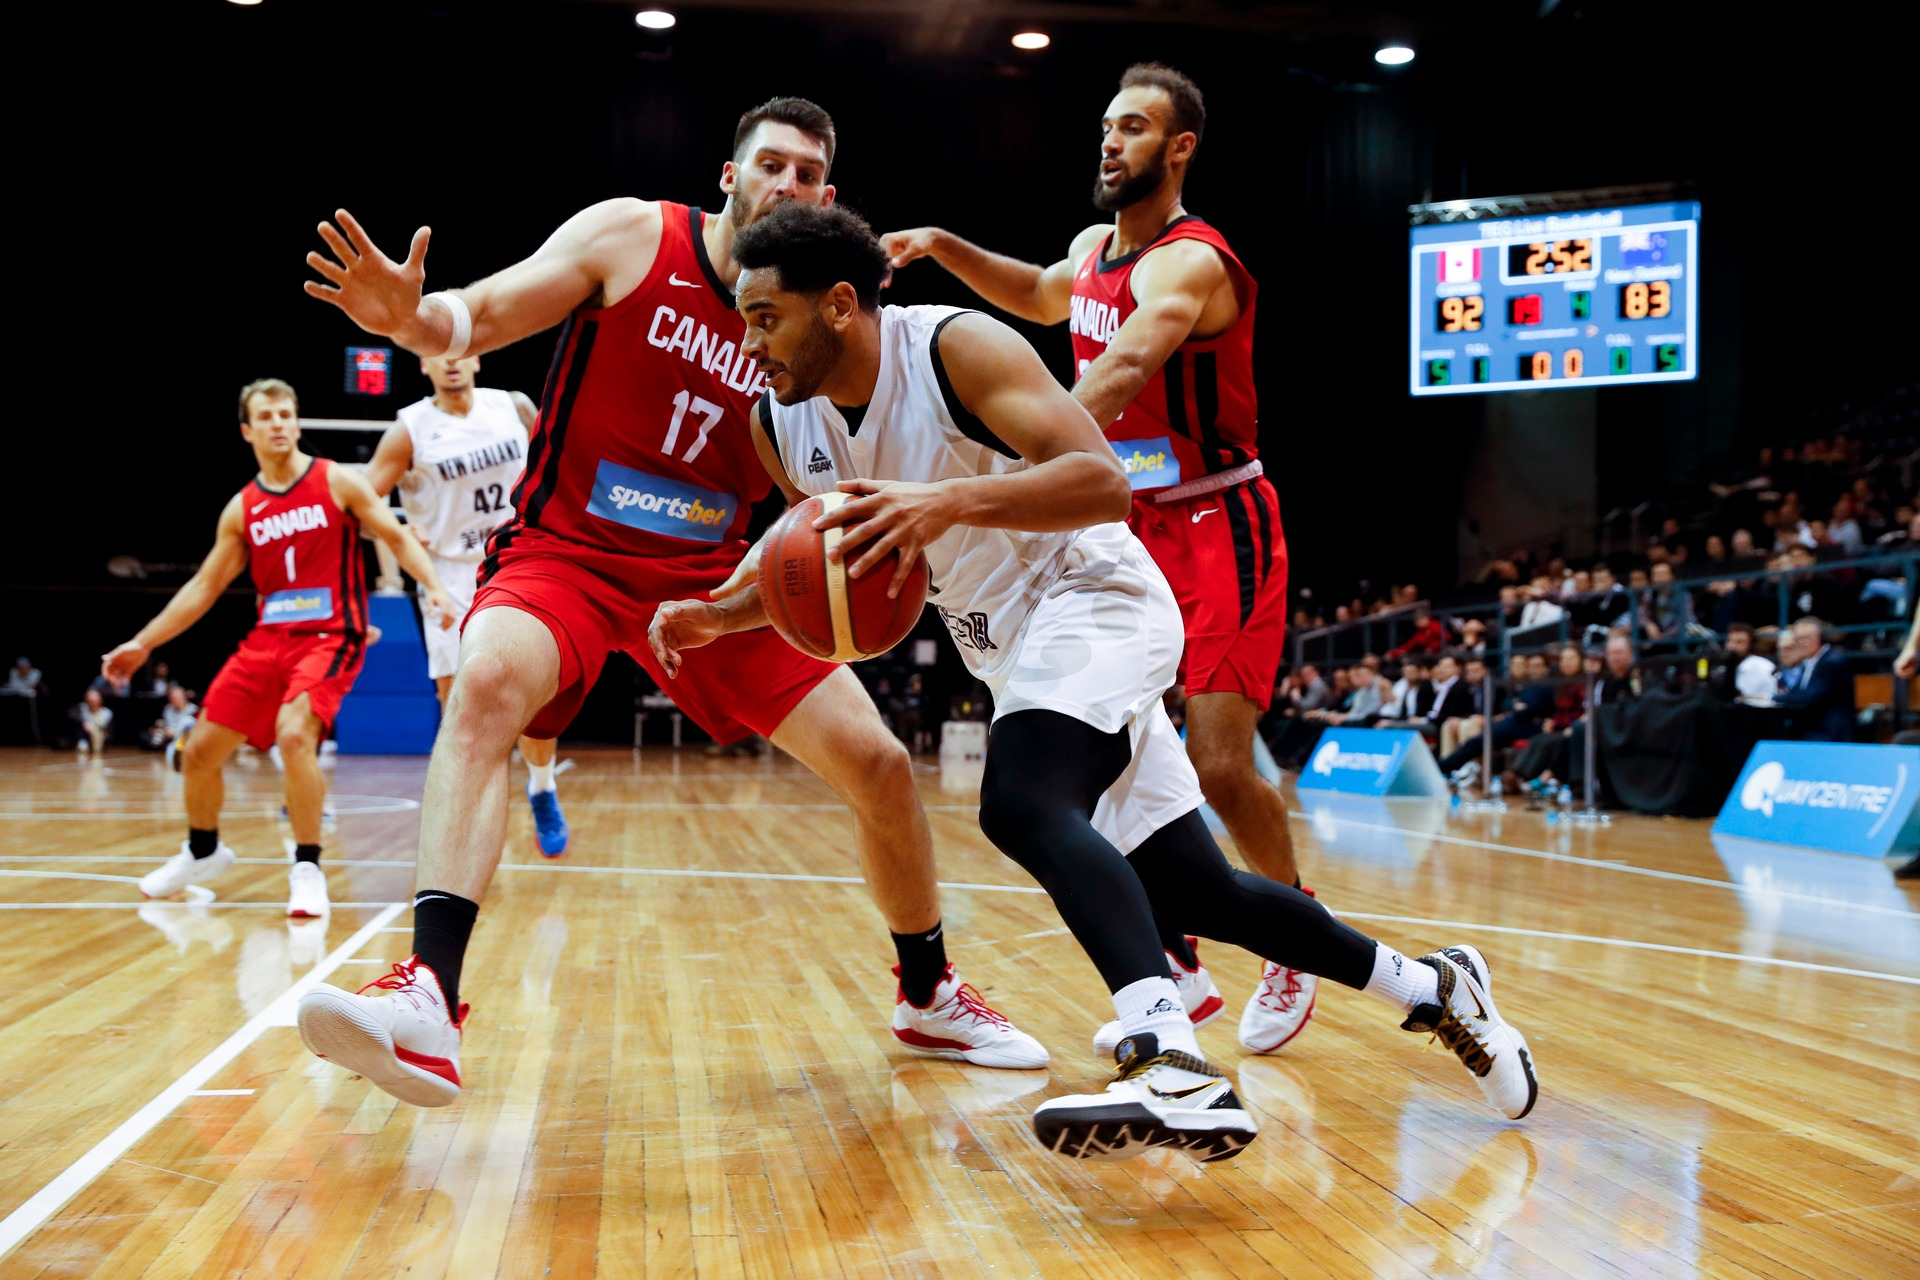 Basketball: Tall Blacks pipped in overtime thriller against Canada